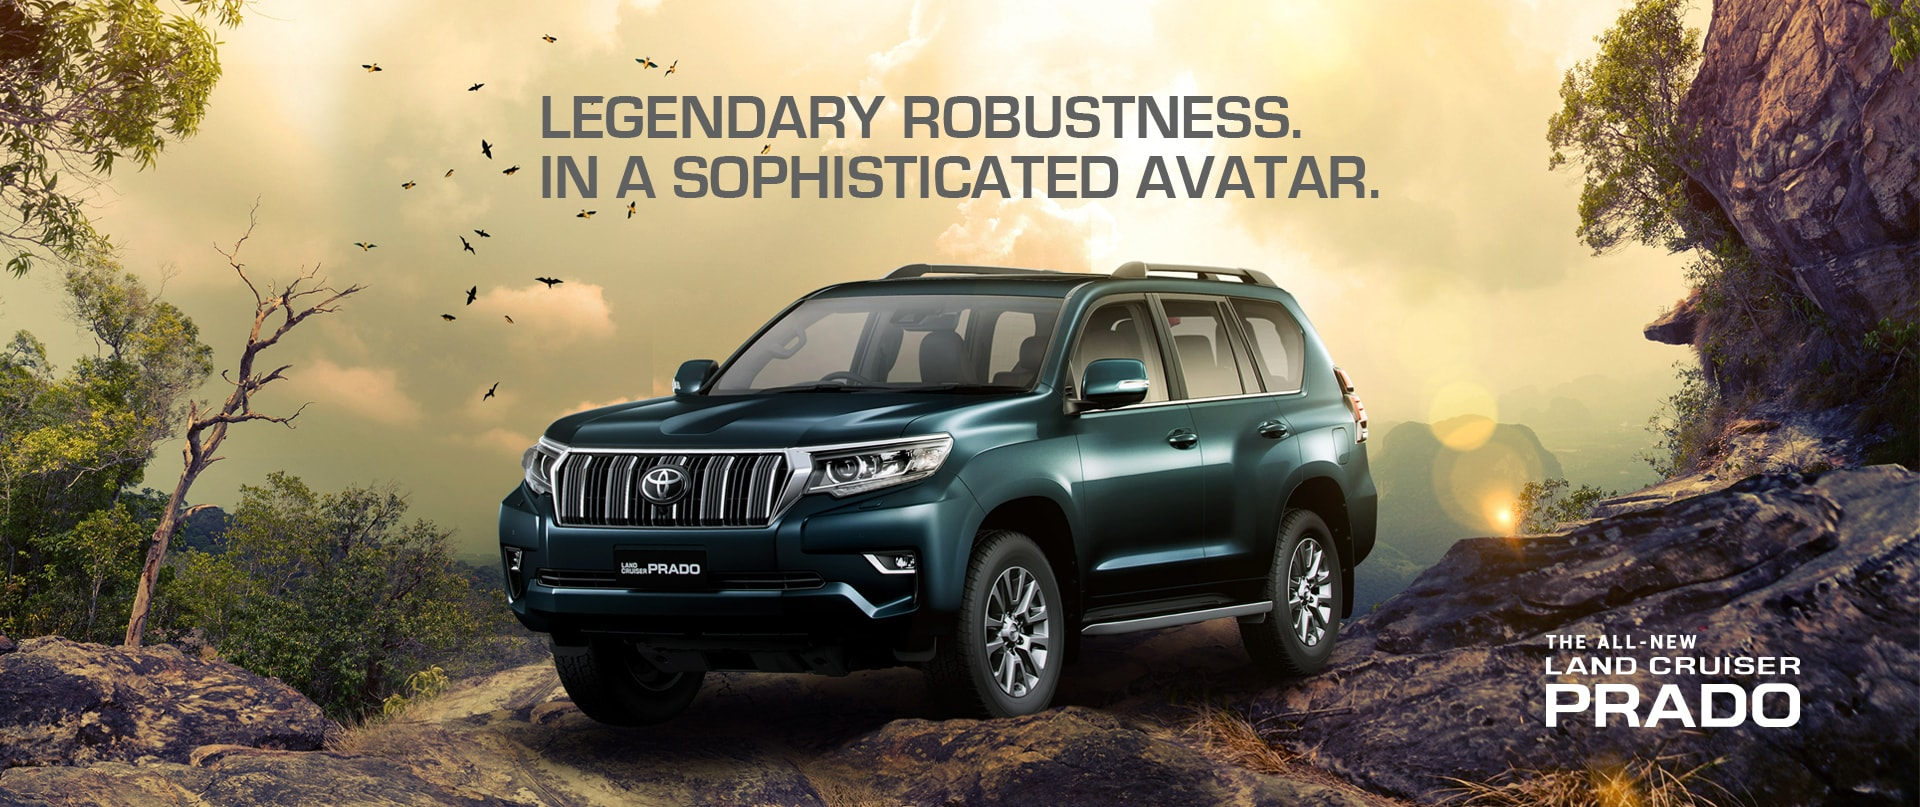 Toyota India | Official Toyota Land Cruiser Prado site